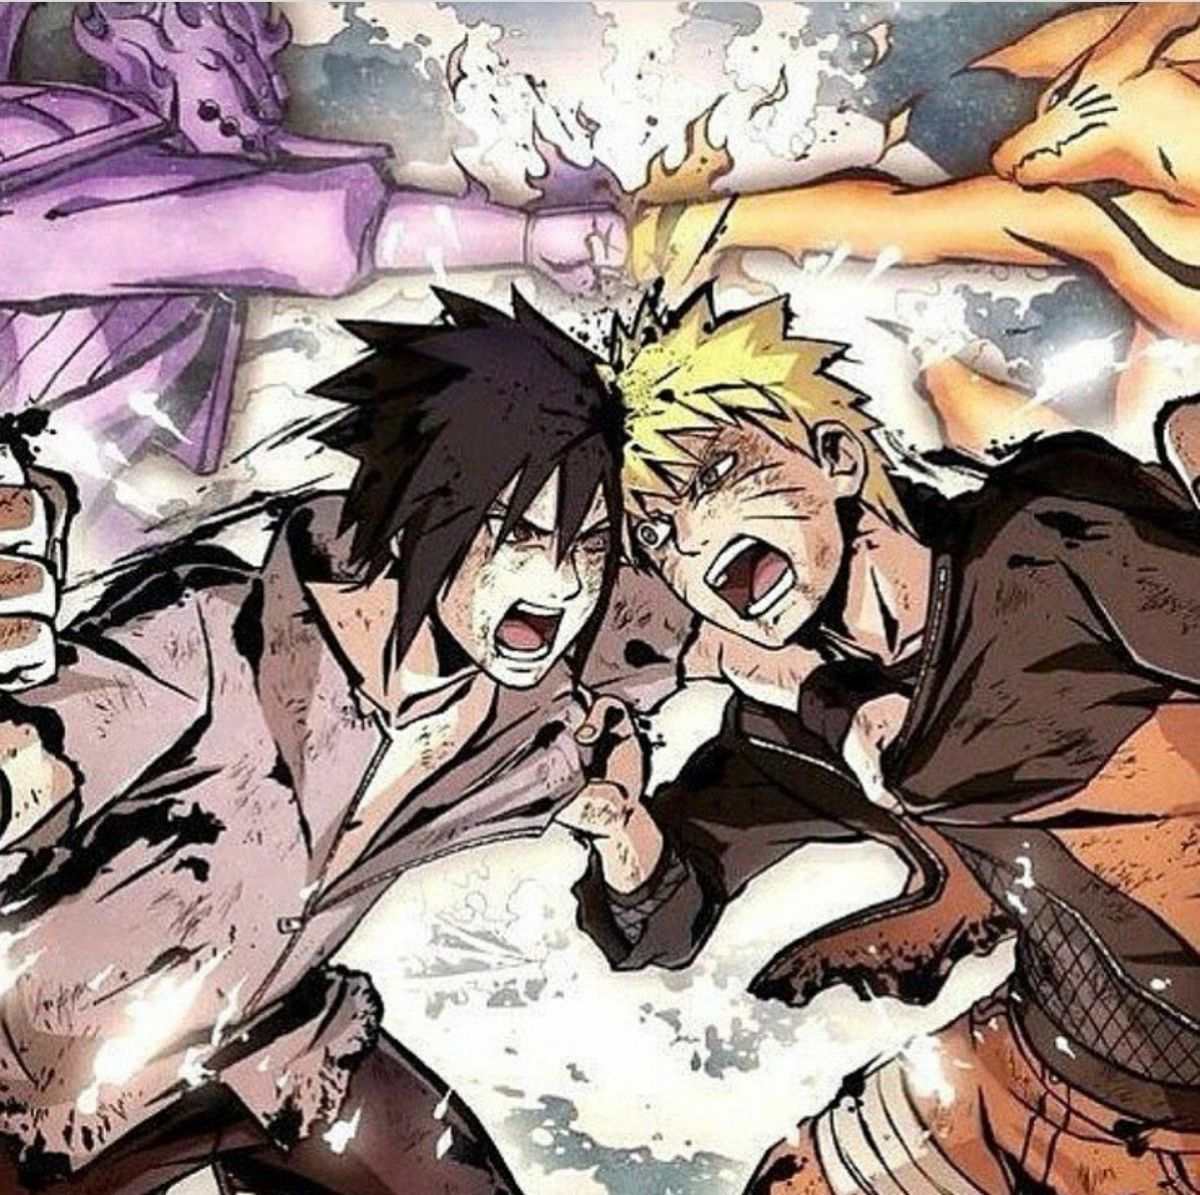 Naruto Vs Sasuke Final Battle